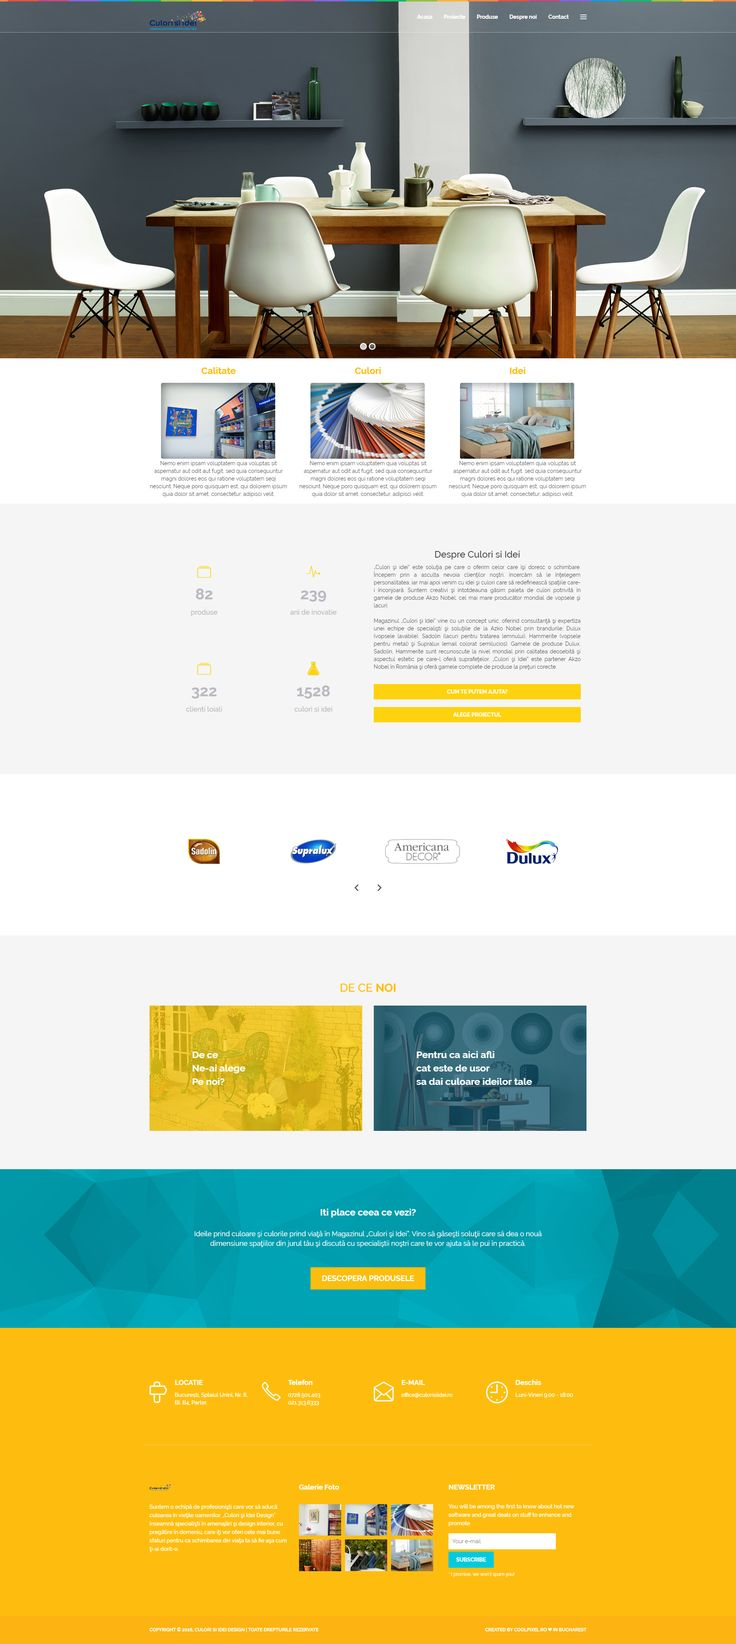 Website design - Colours